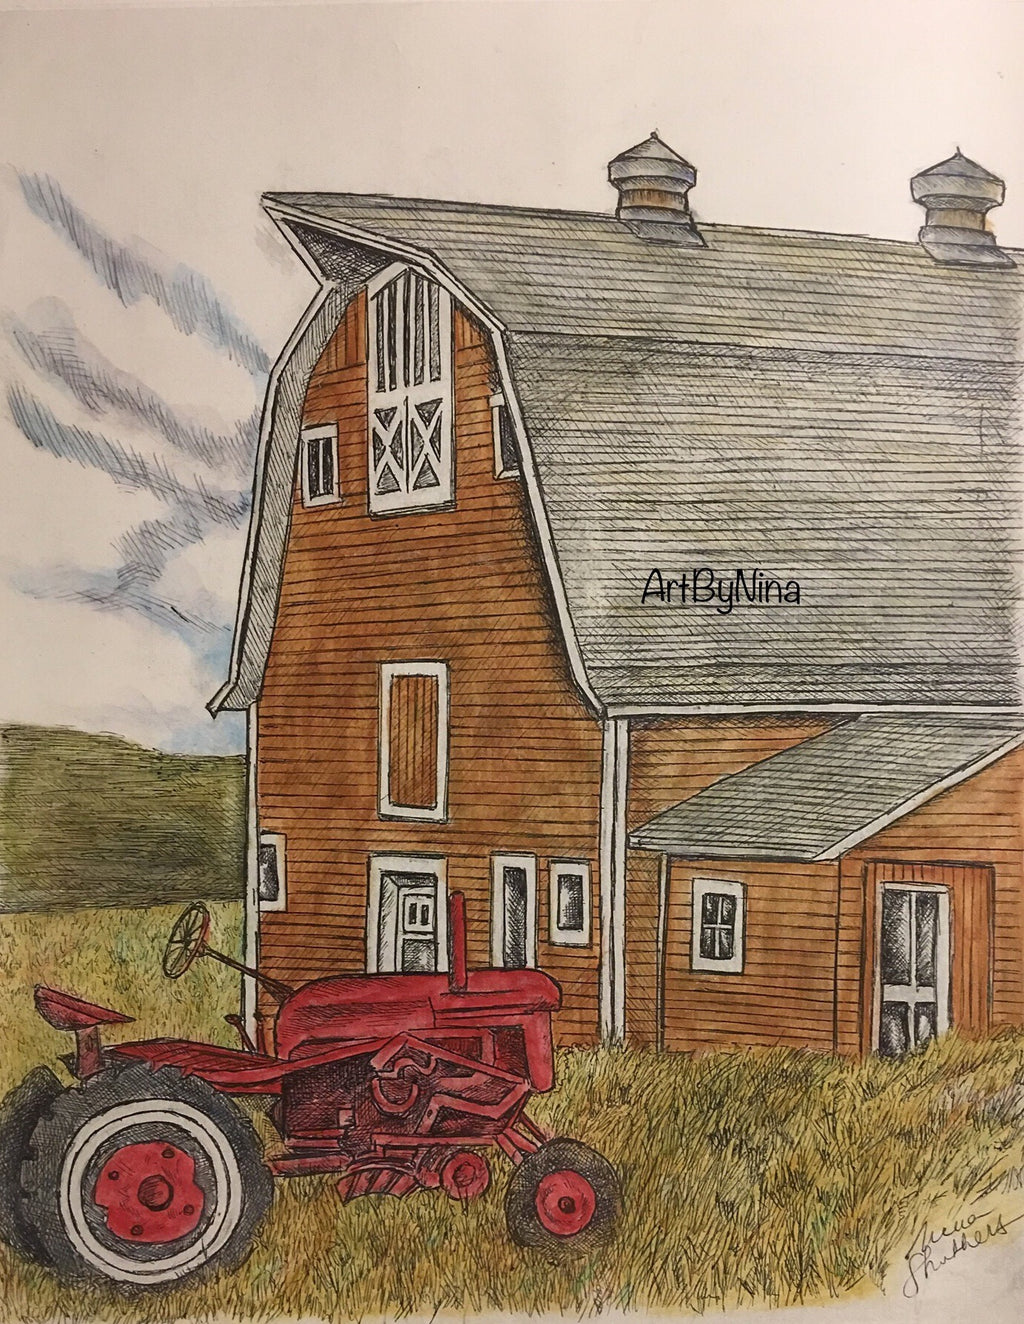 Barn Art - Barn with Tractor (Vertical) #268